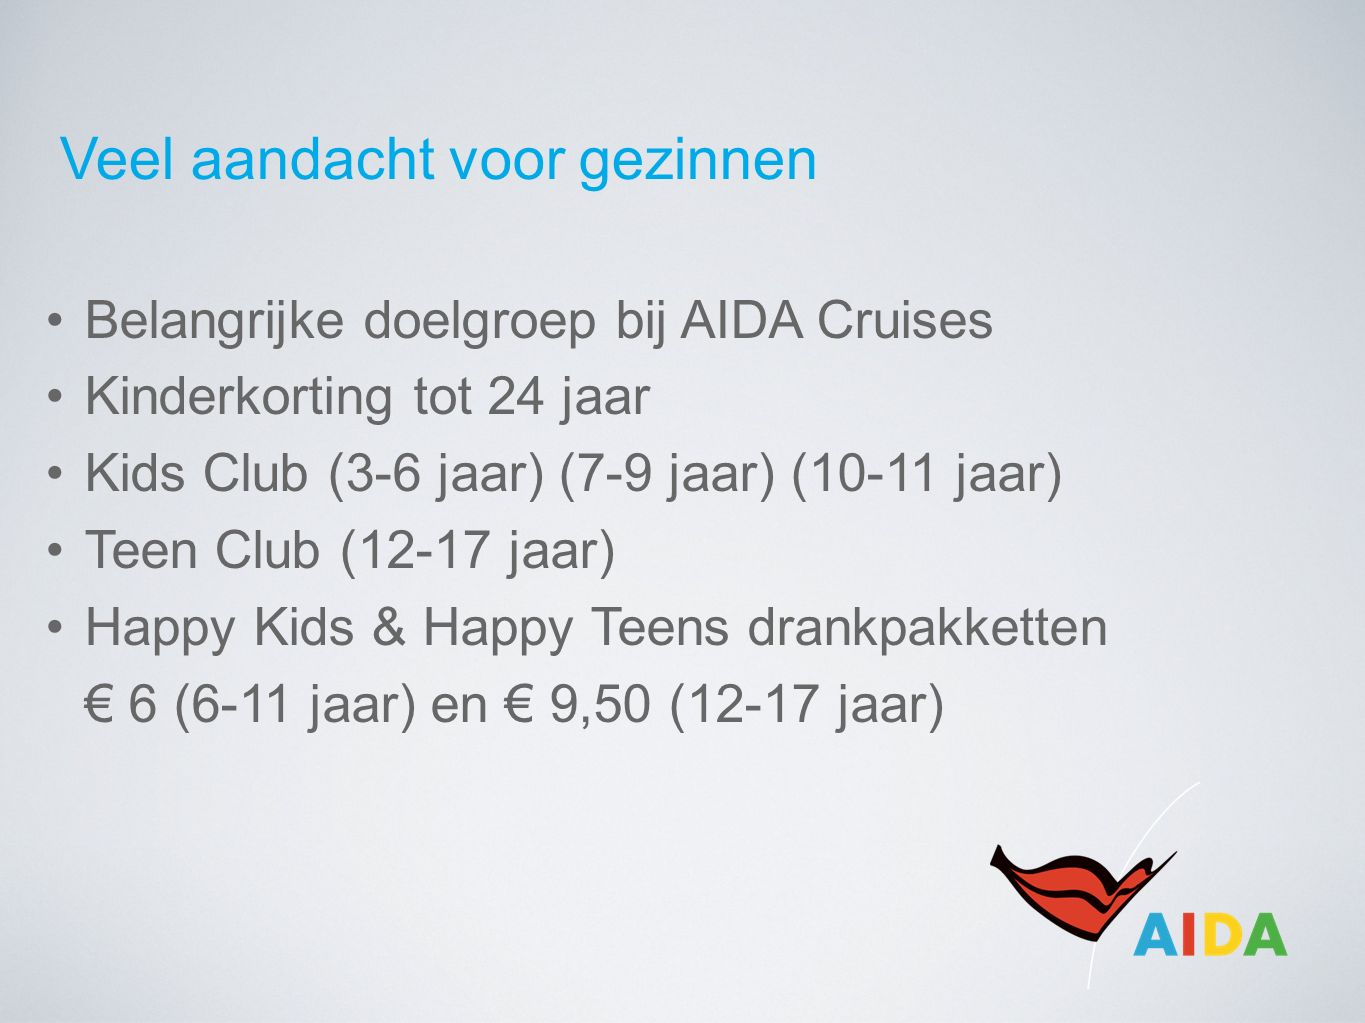 Veel aandacht voor gezinnen Belangrijke doelgroep bij AIDA Cruises Kinderkorting tot 24 jaar Kids Club (3-6 jaar) (7-9 jaar) (10-11 jaar) Teen Club (12-17 jaar) Happy Kids & Happy Teens drankpakketten € 6 (6-11 jaar) en € 9,50 (12-17 jaar)